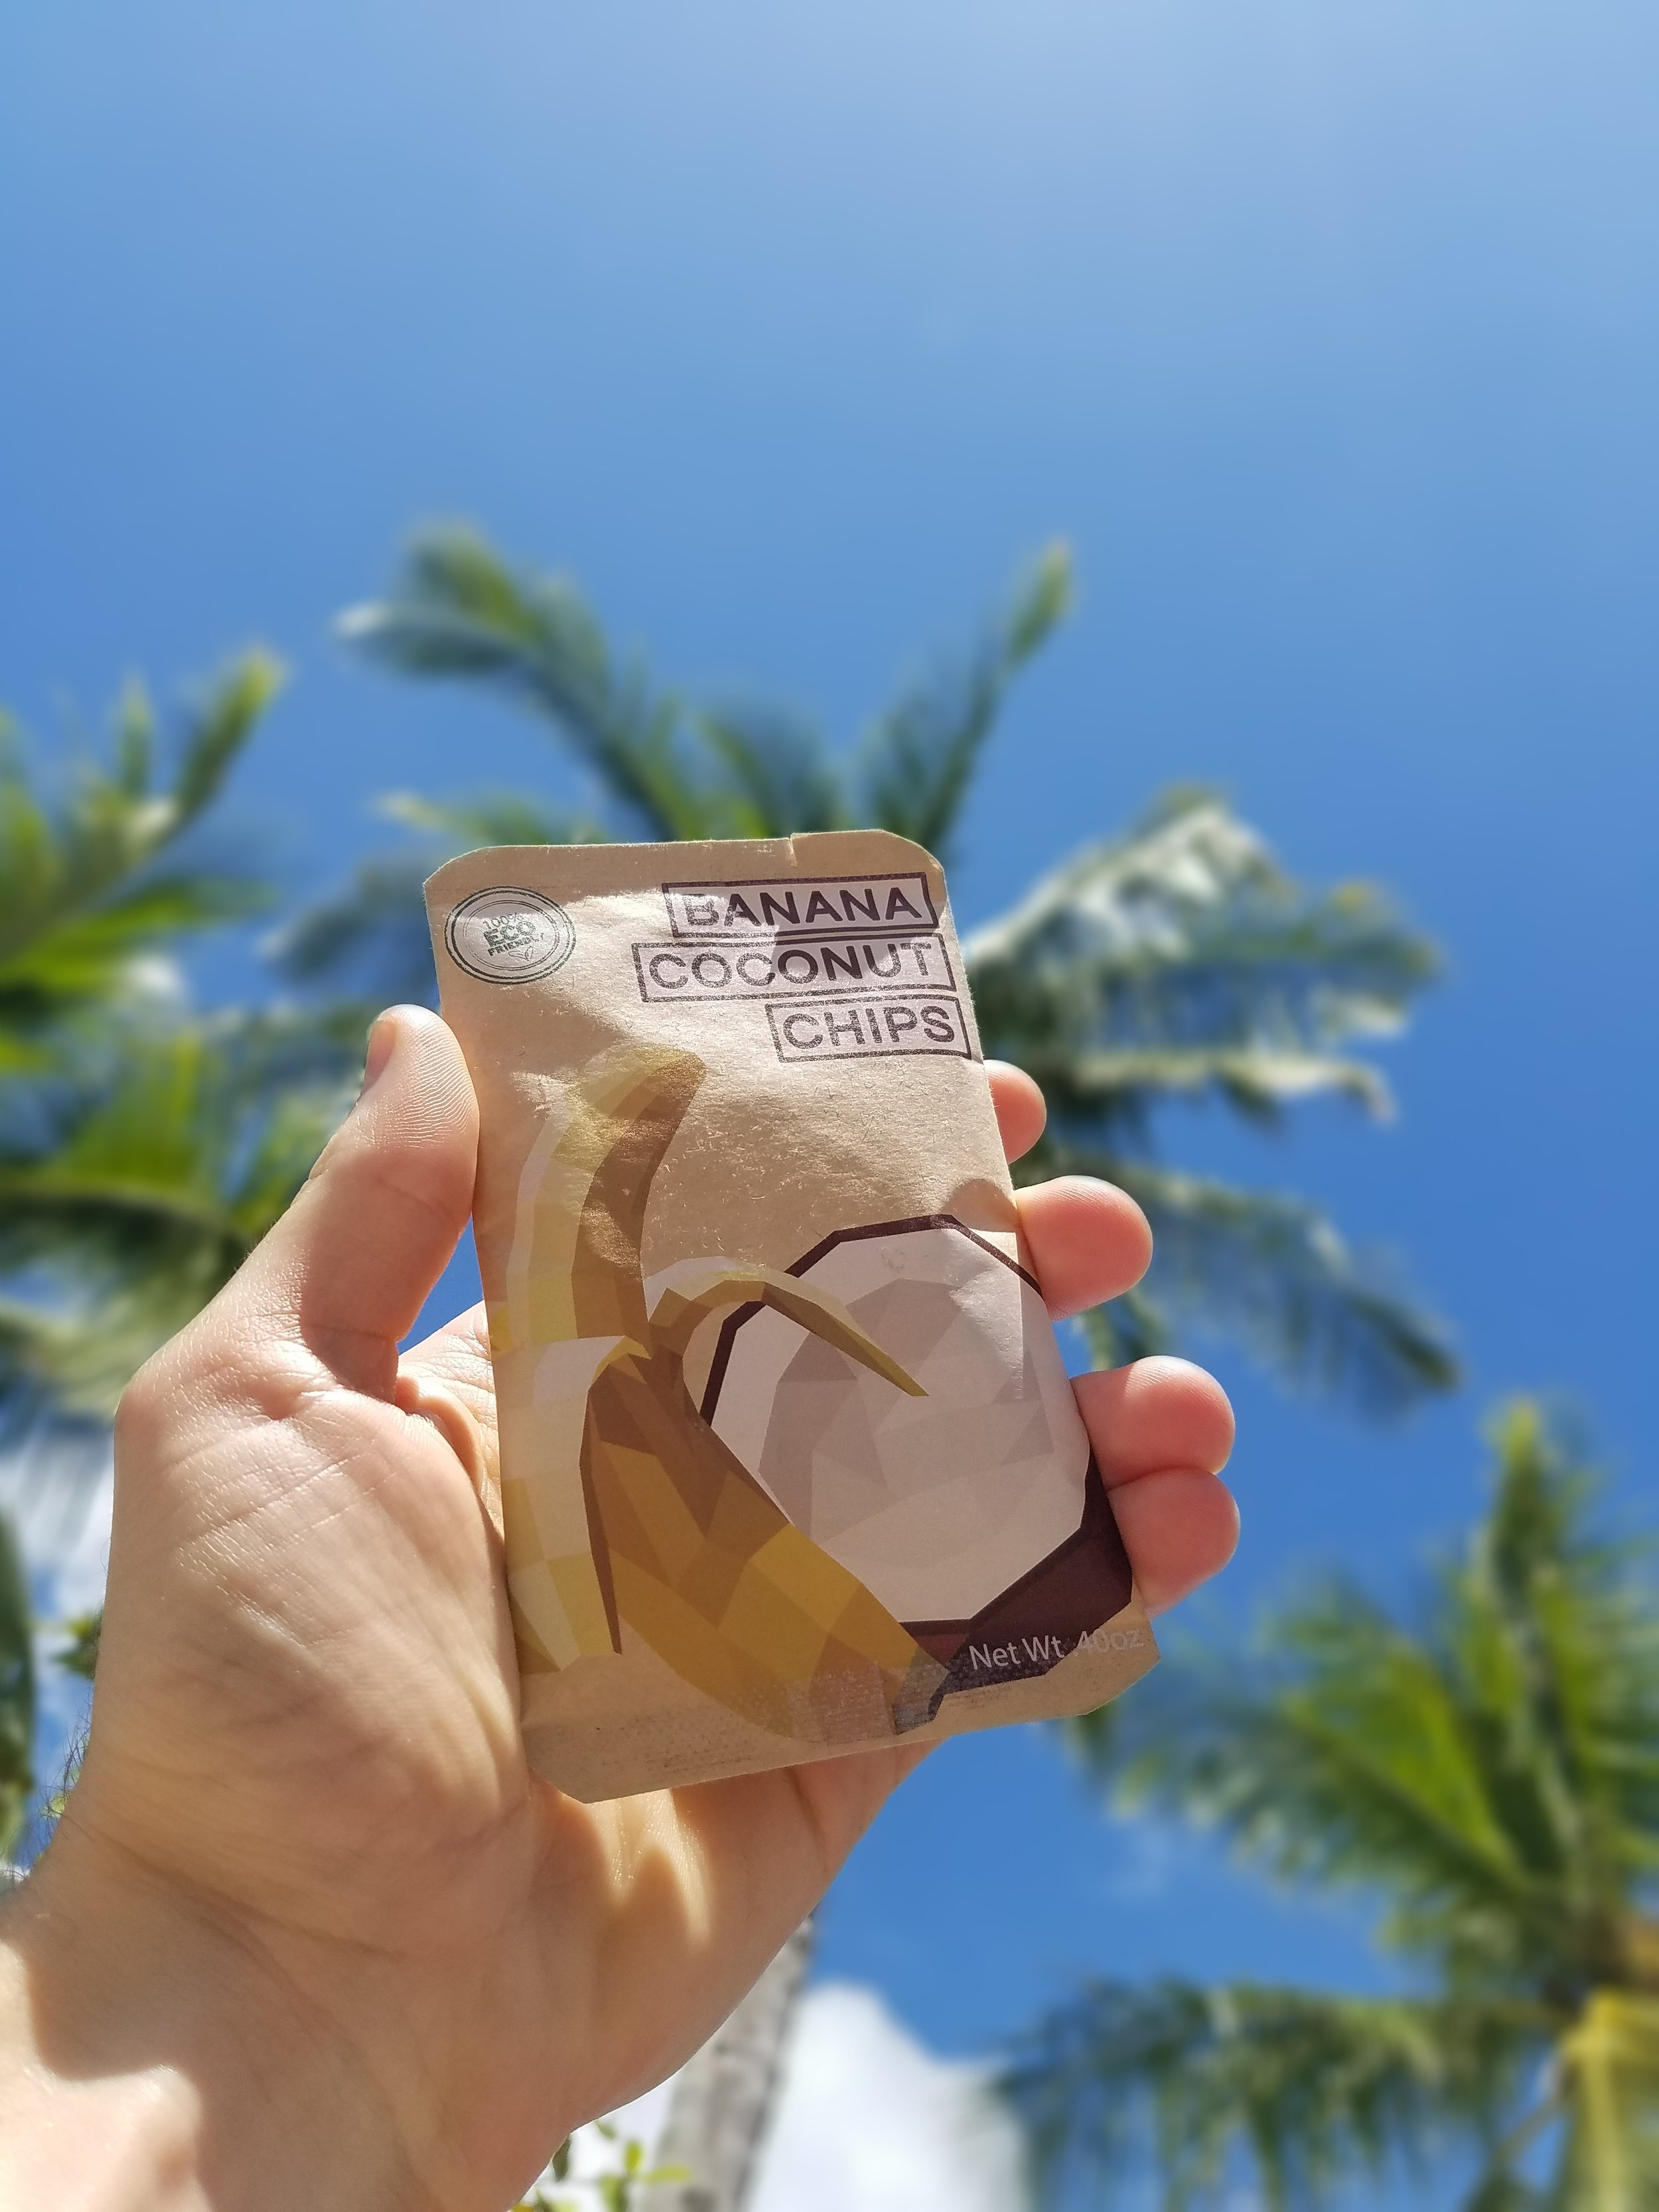 Coconut Trees and Chips